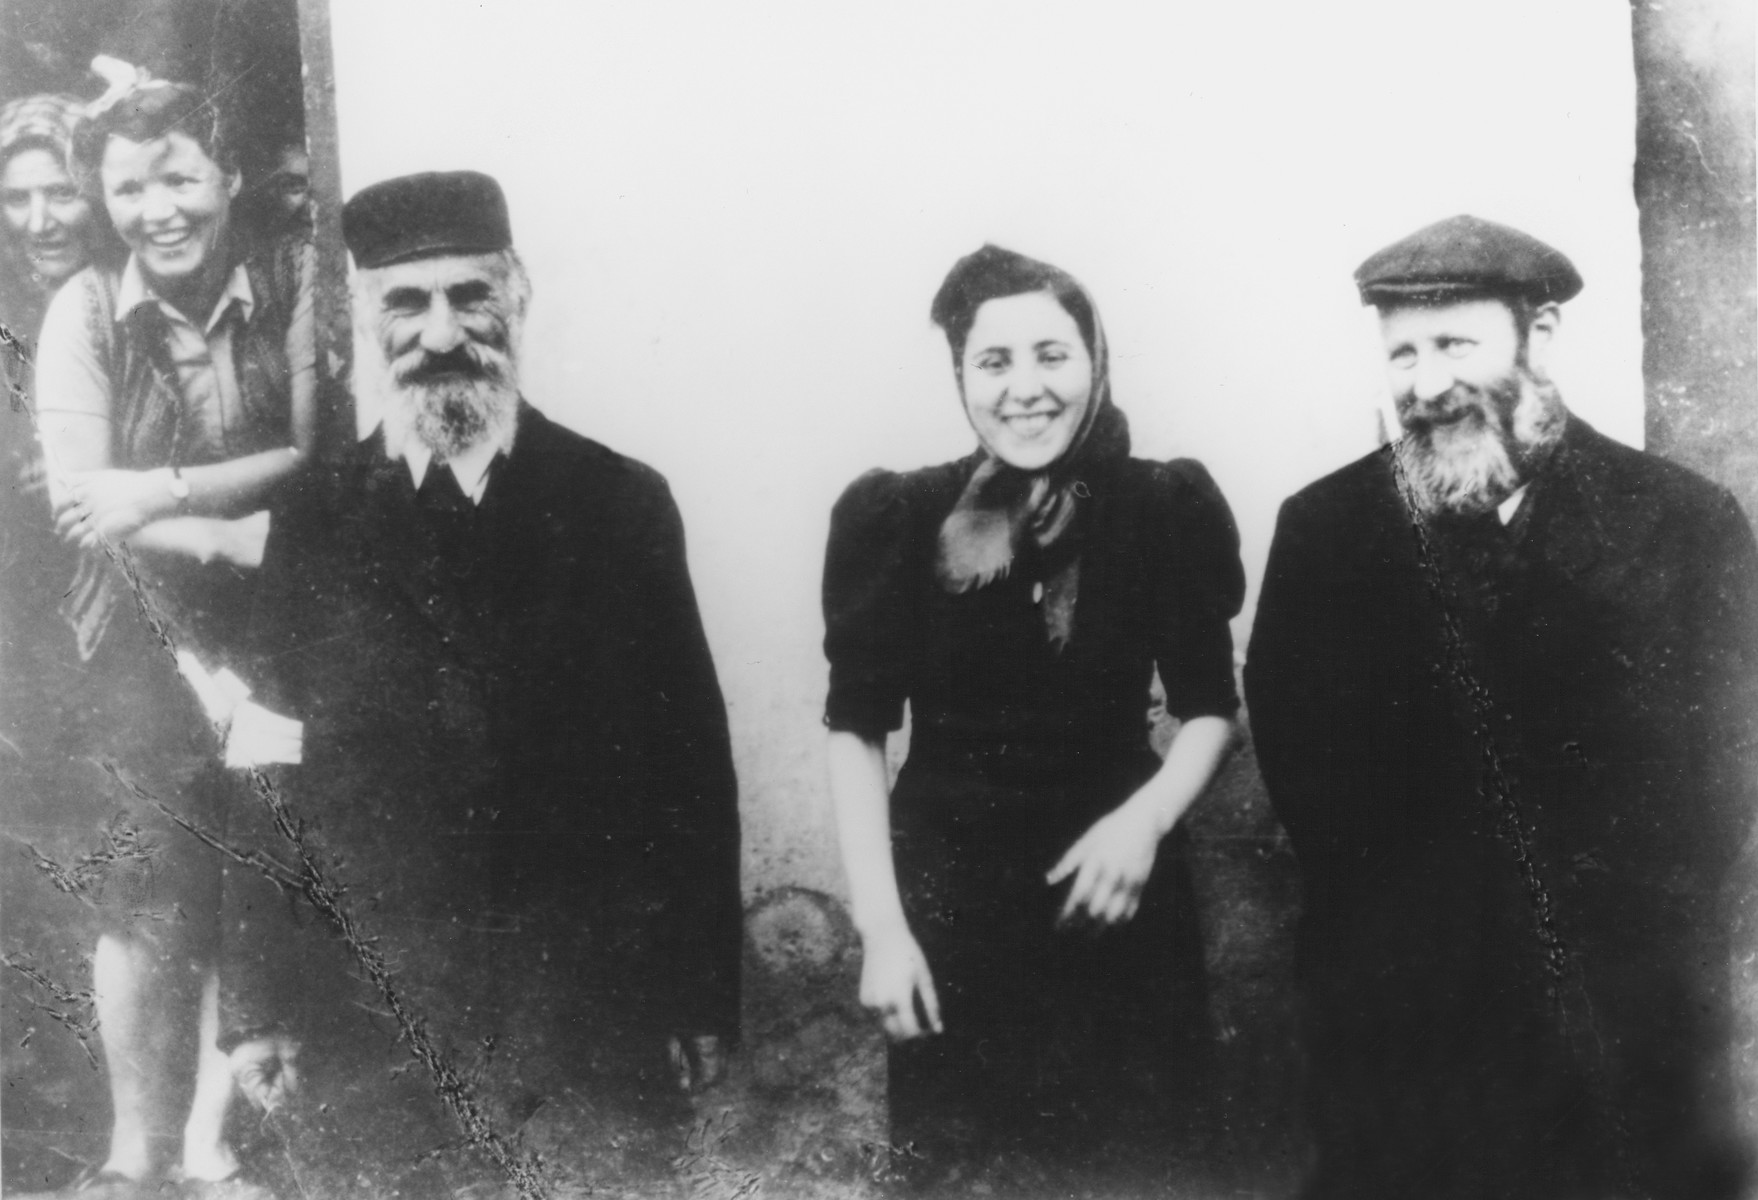 Members of the Gelbfisz family in the Siedlce ghetto.  Pictured on the far right is Shlomo Yosef Gelbfisz.  Next to him is his daugher Esther.